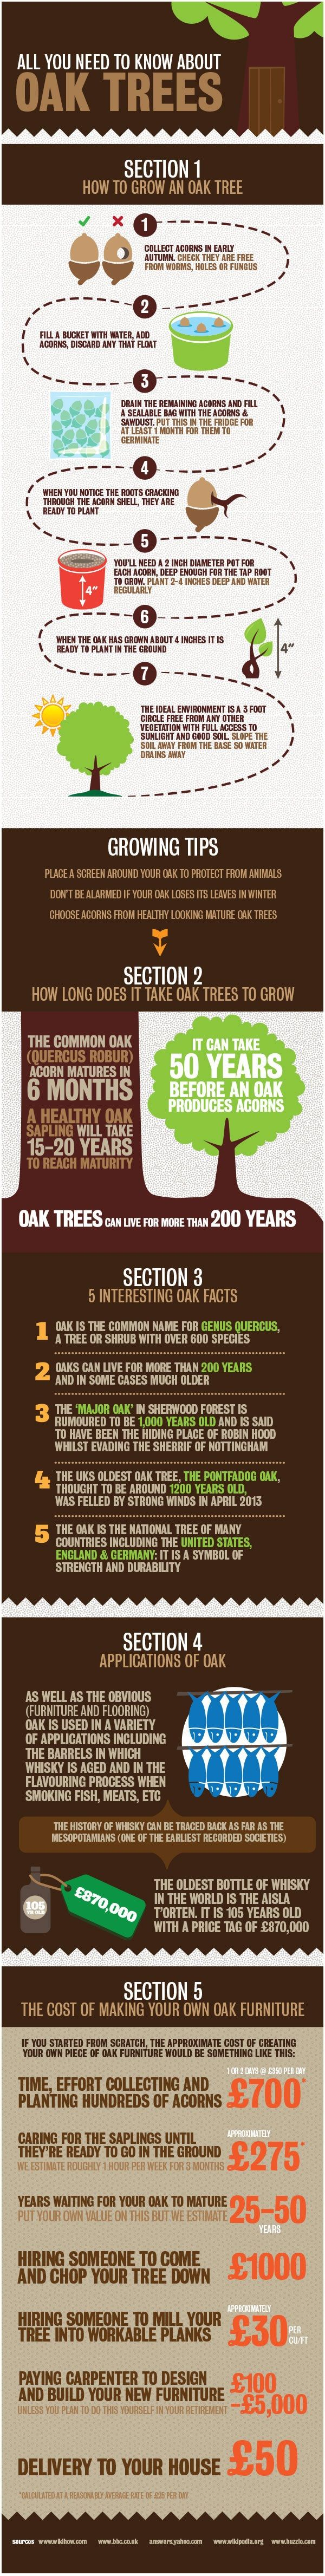 All You Need To Know About Oak [infographic]